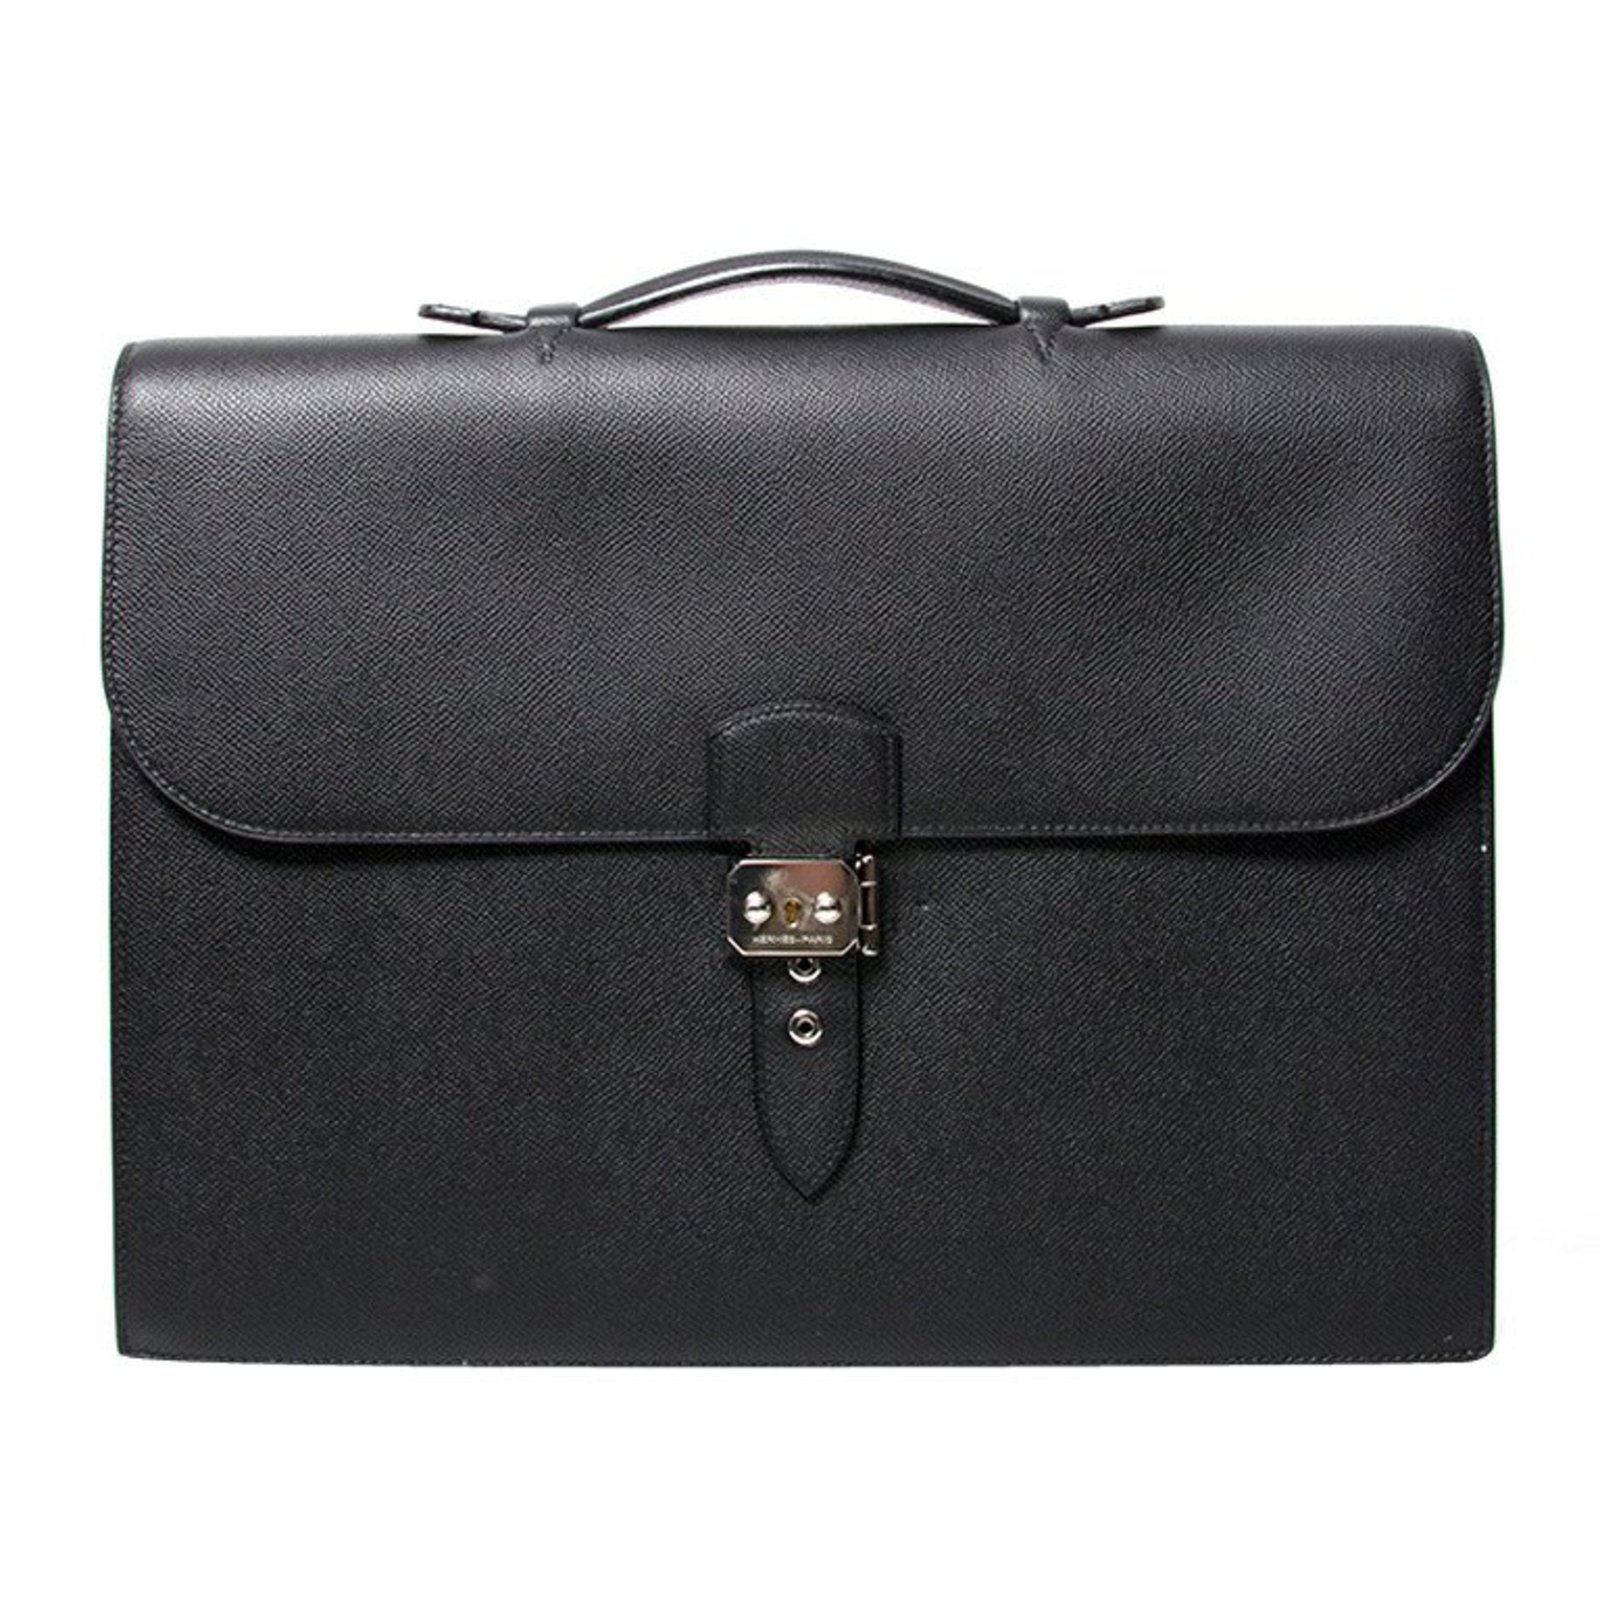 8c0abd6403ac Hermès Briefcase black leather Bags Briefcases Leather Black ref.47794